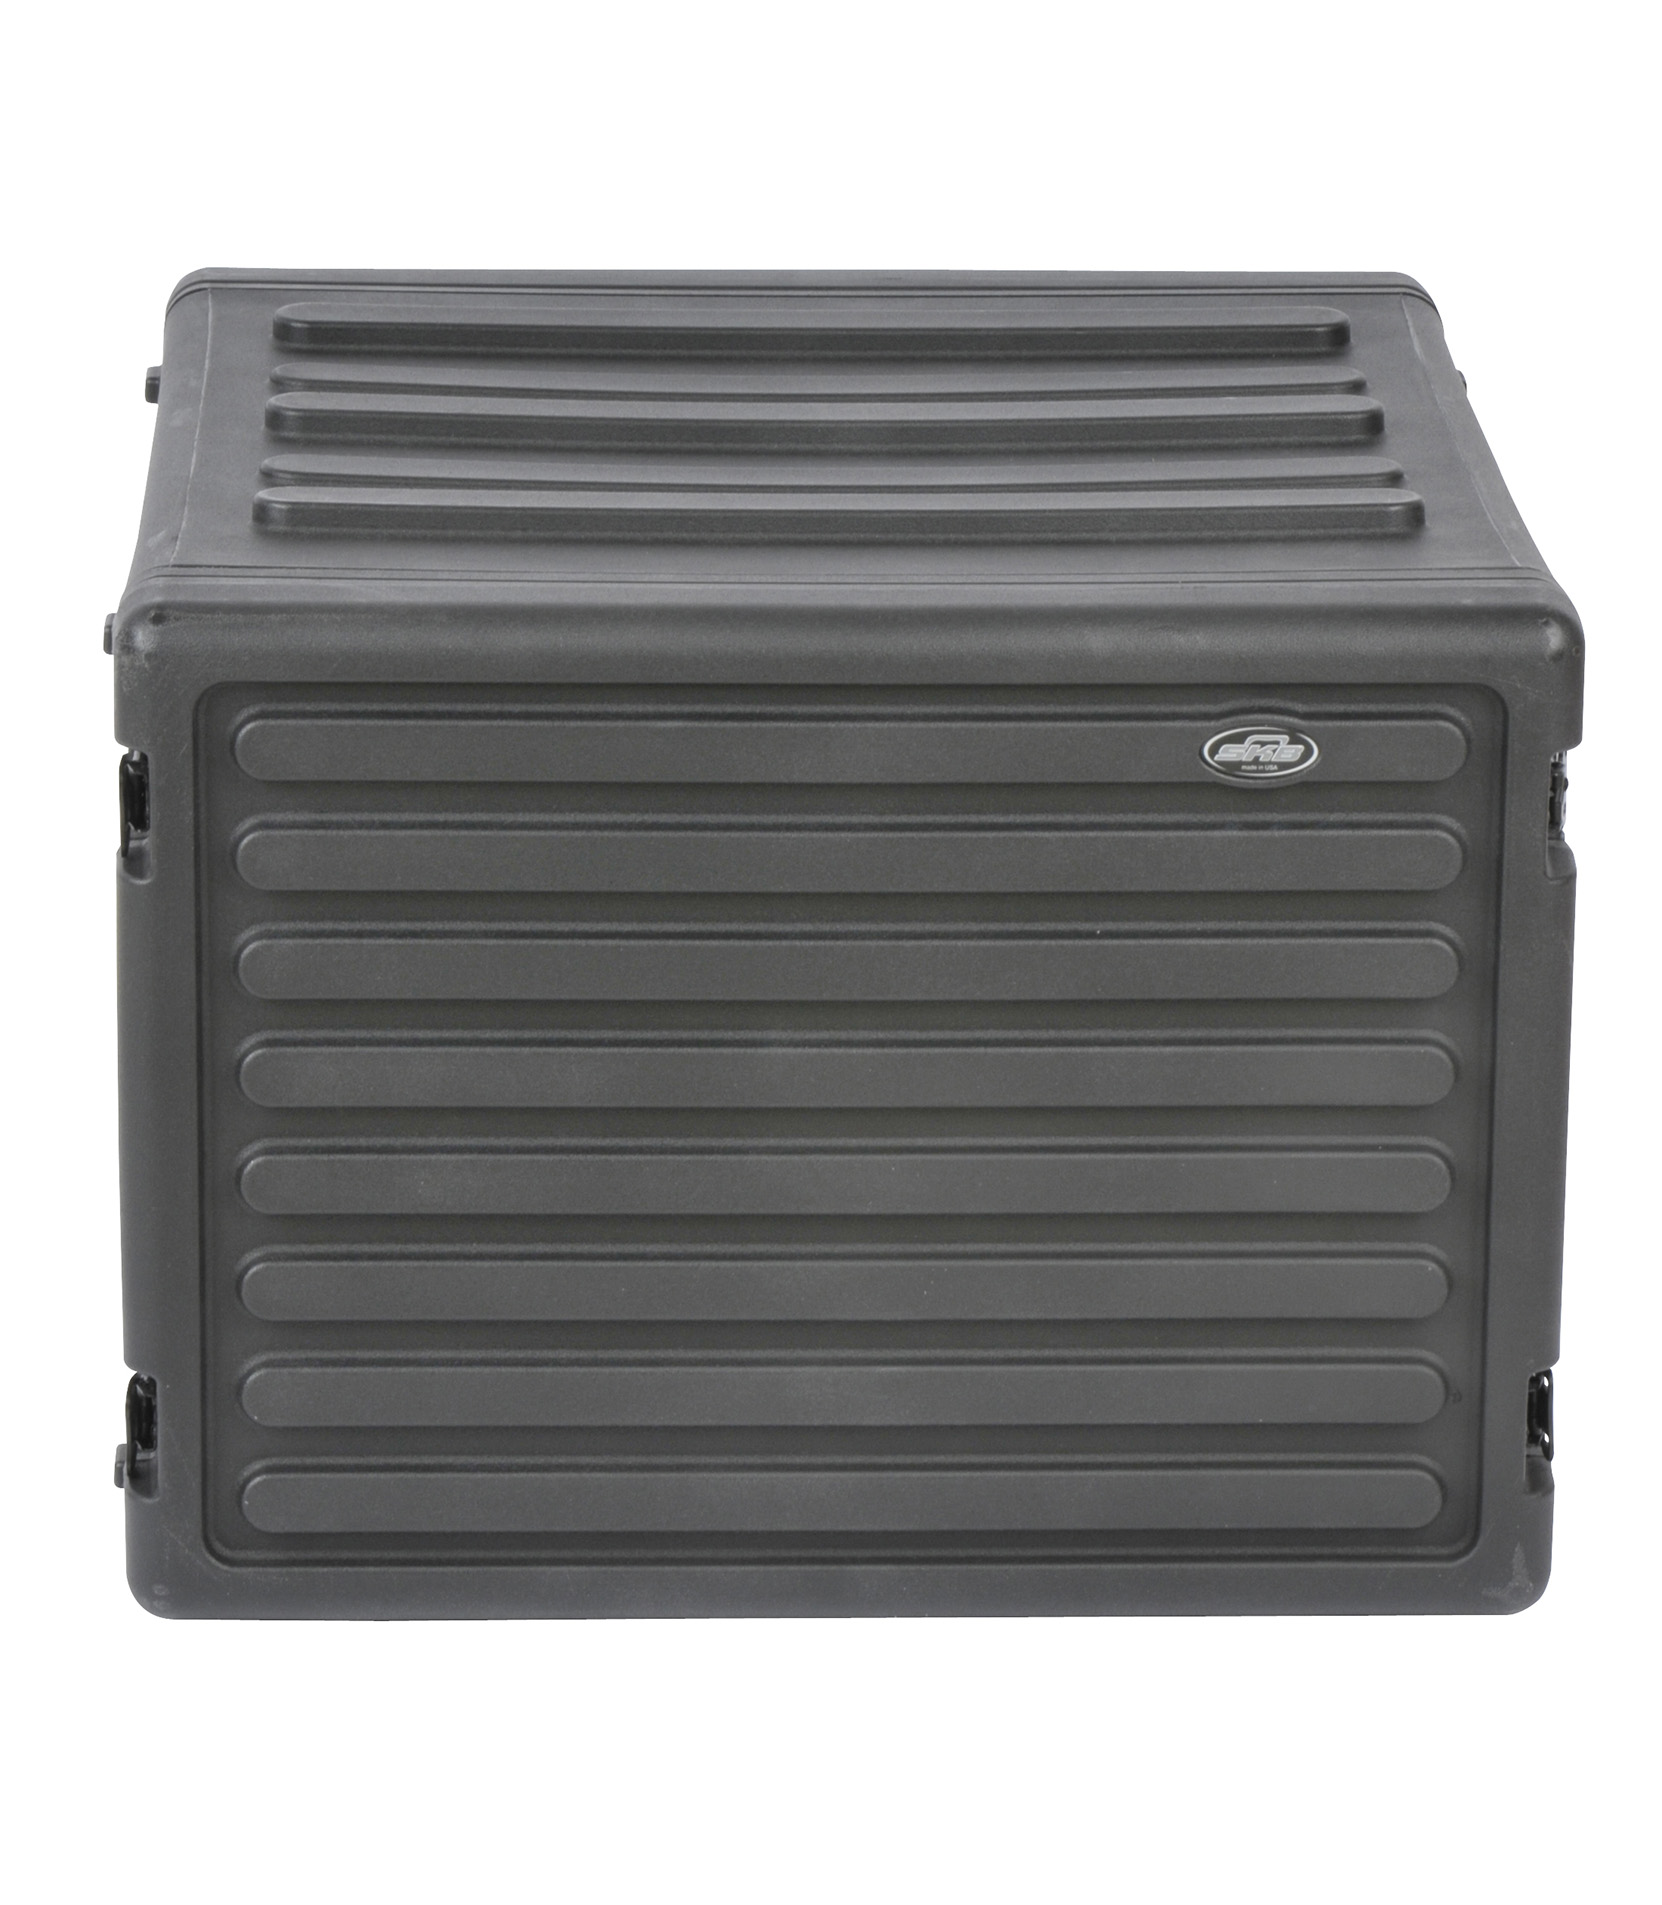 skb - 1SKB R8U 8U Space Roto Molded Rack - Melody House Musical Instruments